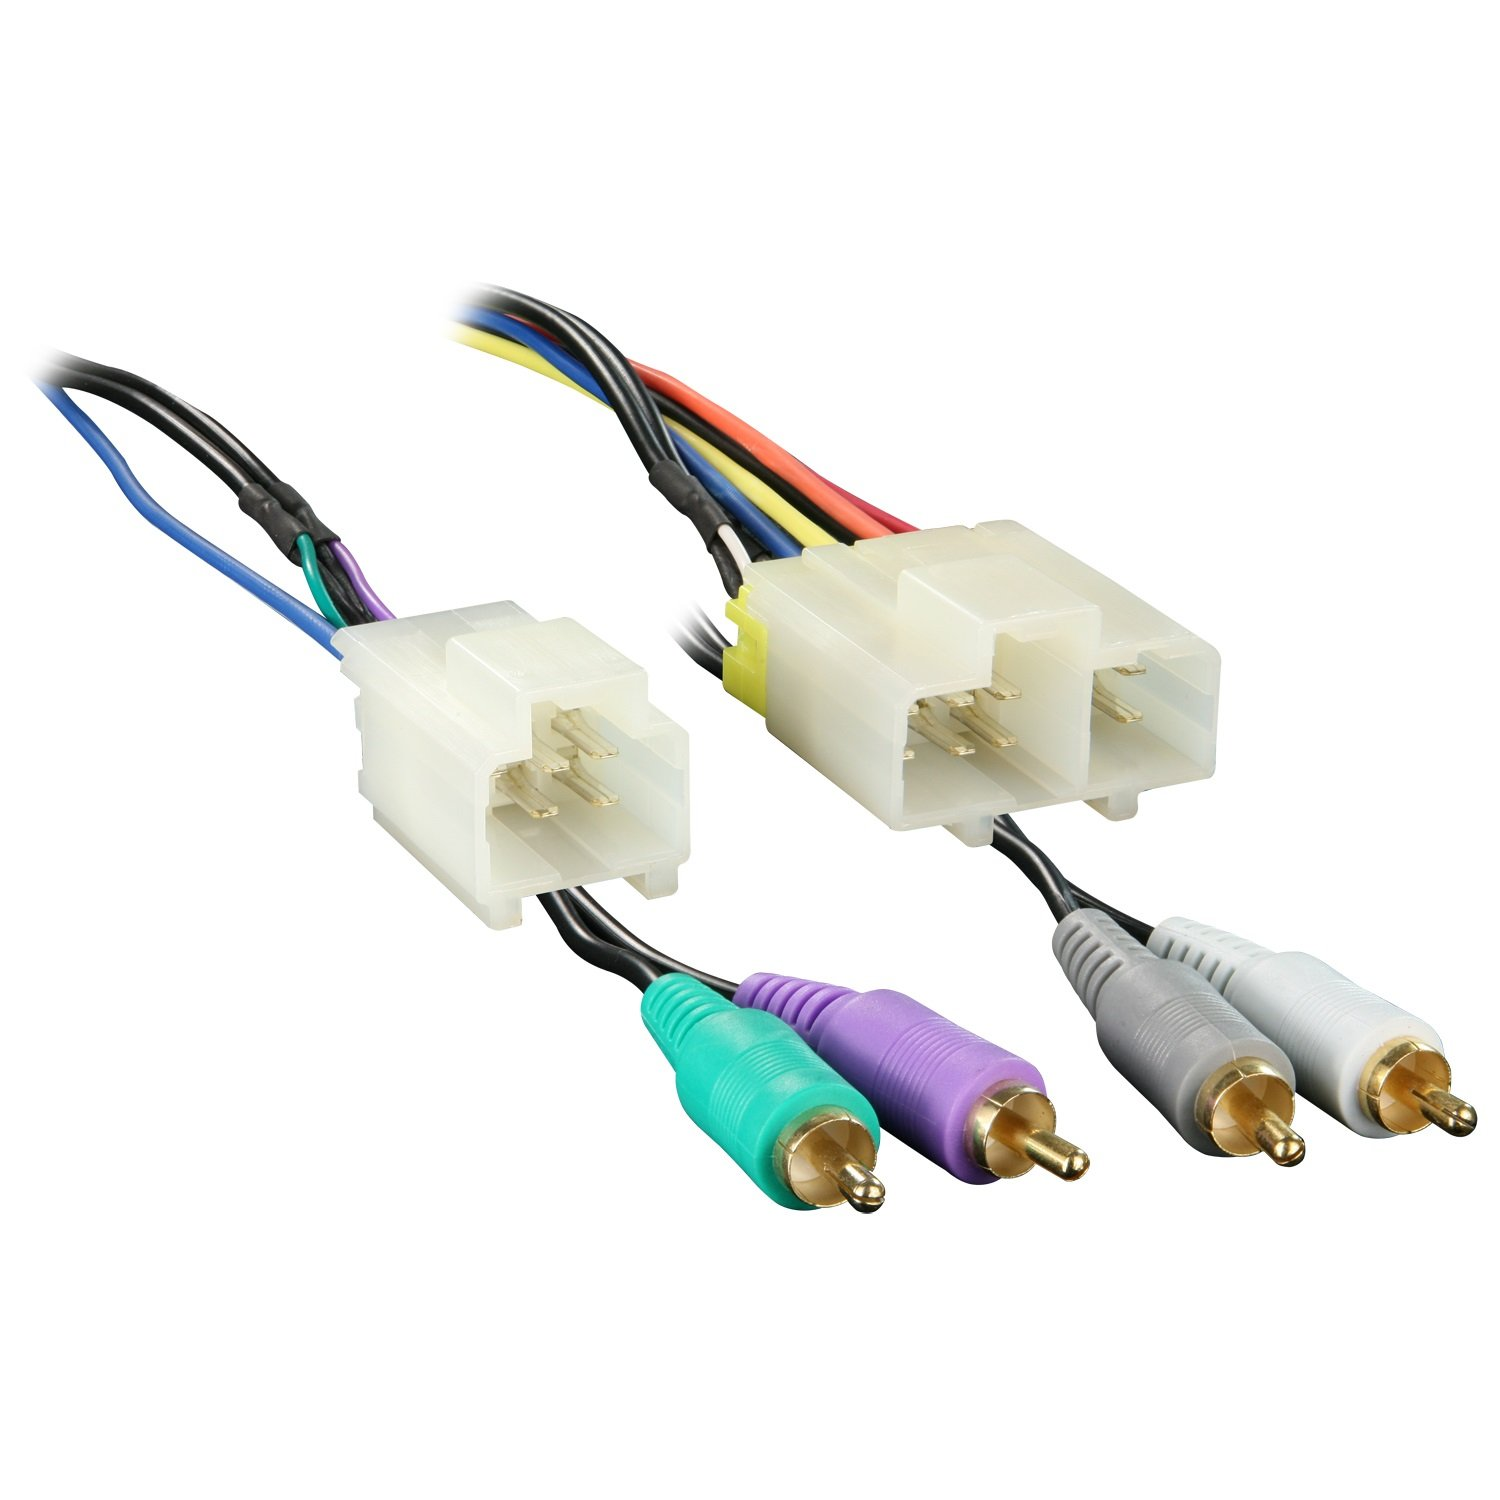 61MPWzGBemL._SL1500_ amazon com metra 70 1764 radio wiring harness for nissan 87 94  at gsmportal.co